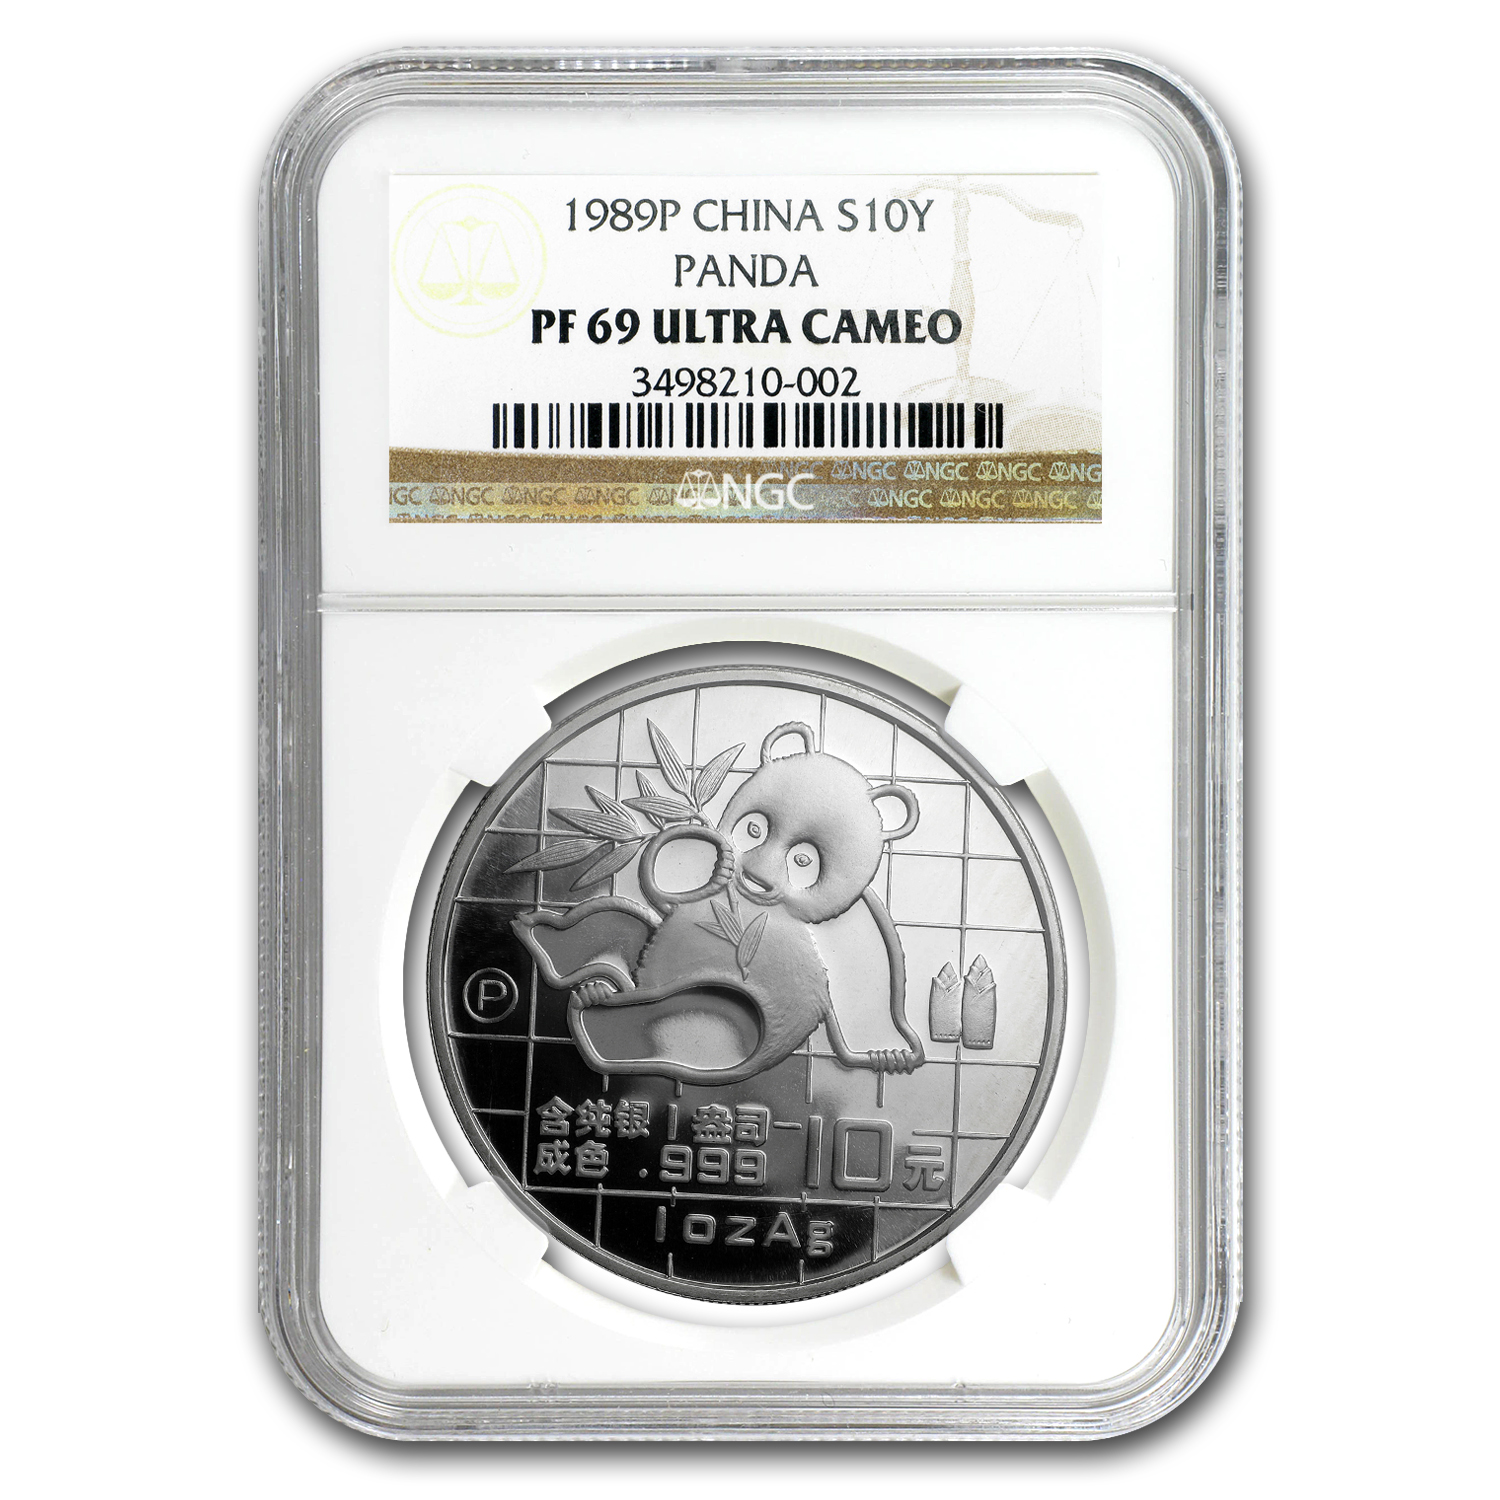 1989-P China 1 oz Silver Panda PF-69 NGC